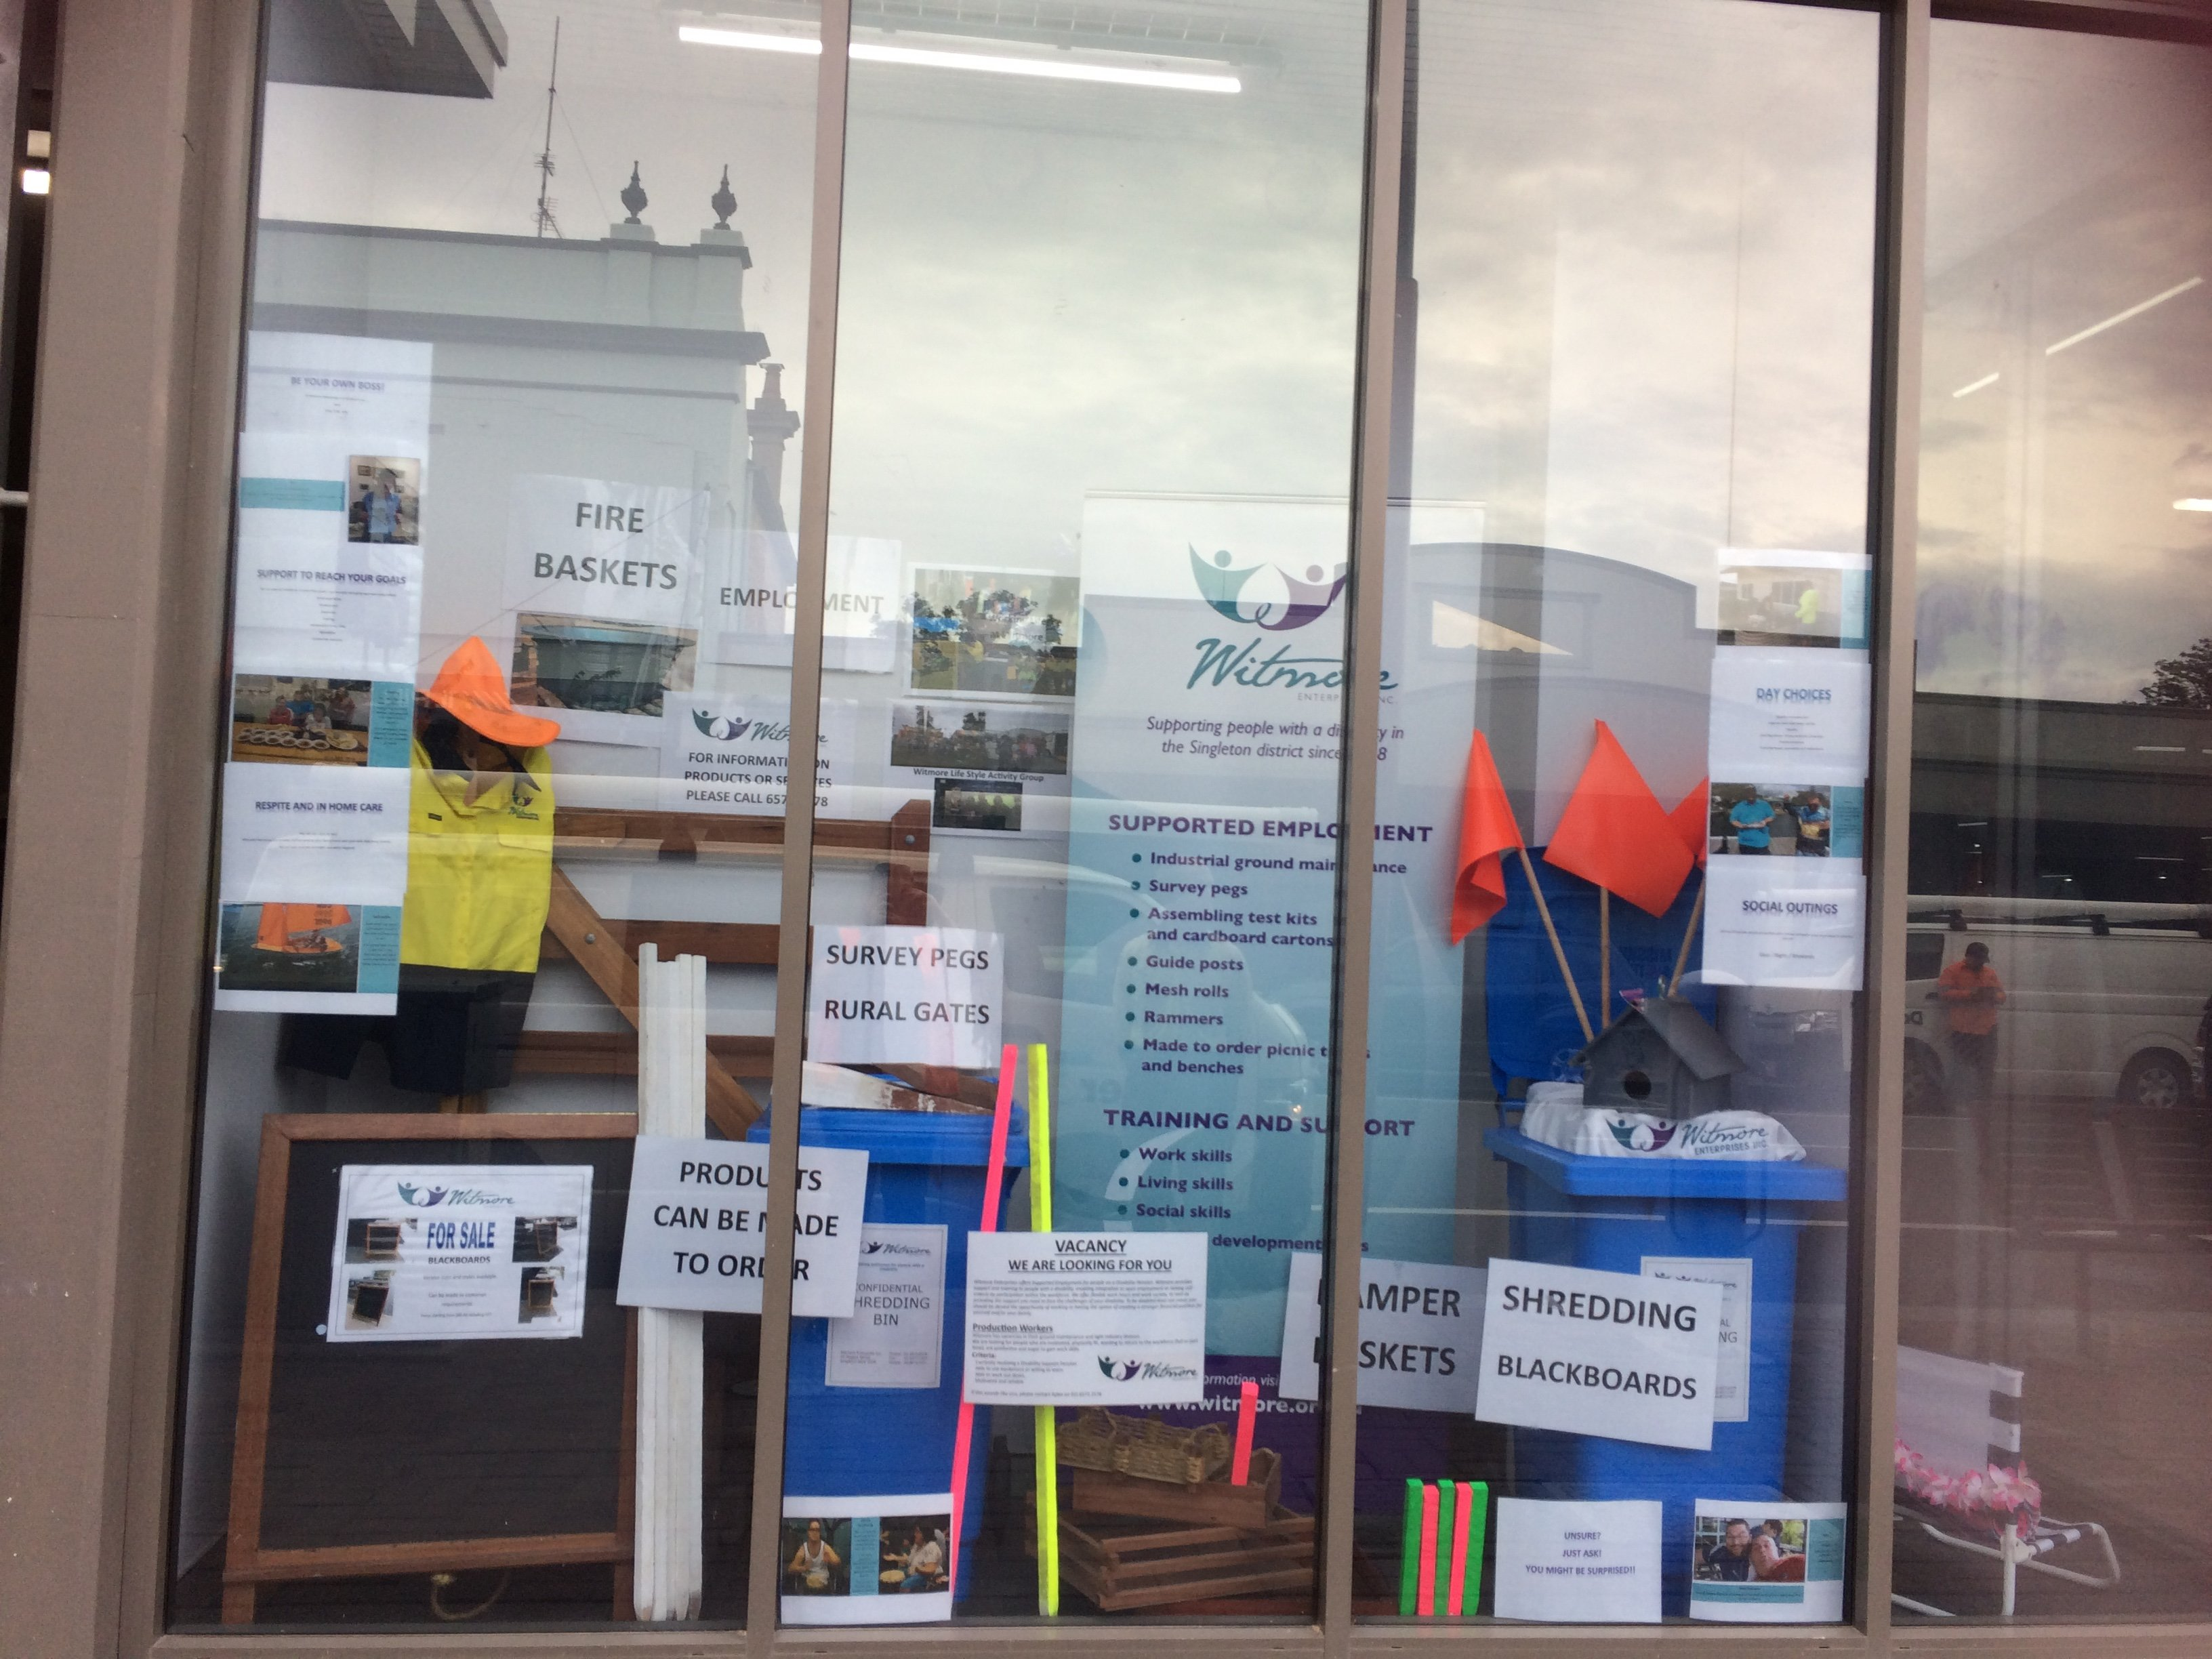 Have a look at the Witmore Enterprises window display in the mall windows on John Street. Aimee has put together a wonderful display of the services and products we offer at Witmore Enterprises. For more information call us on (02) 6572 2578.